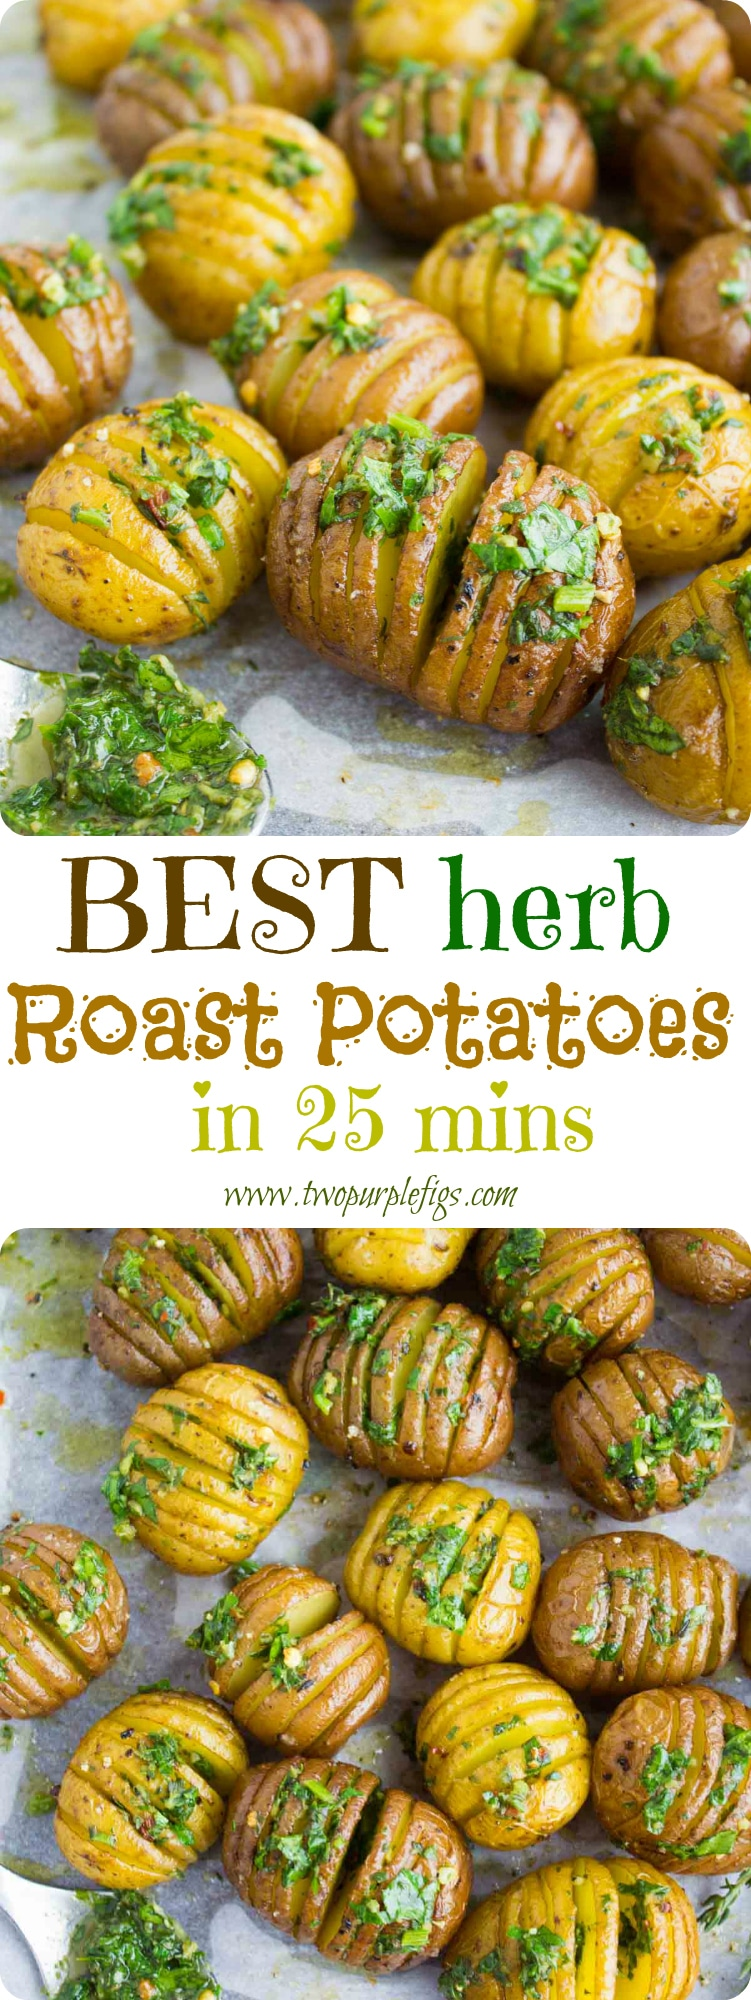 Best Herb Roast Potatoes   This is simply the best recipe for oven roasted potatoes. Picture herb butter smothered Hasselback-style potatoes roasted till crispy on the outside and tender on the inside. Easy to make and simply the perfect side dish for steak or roasts.  www.twopurplefigs.com   #crispy, #oven, #potatoes, #russet, #herb, #foracrowd, #seasoned, #baked, #vegetarian